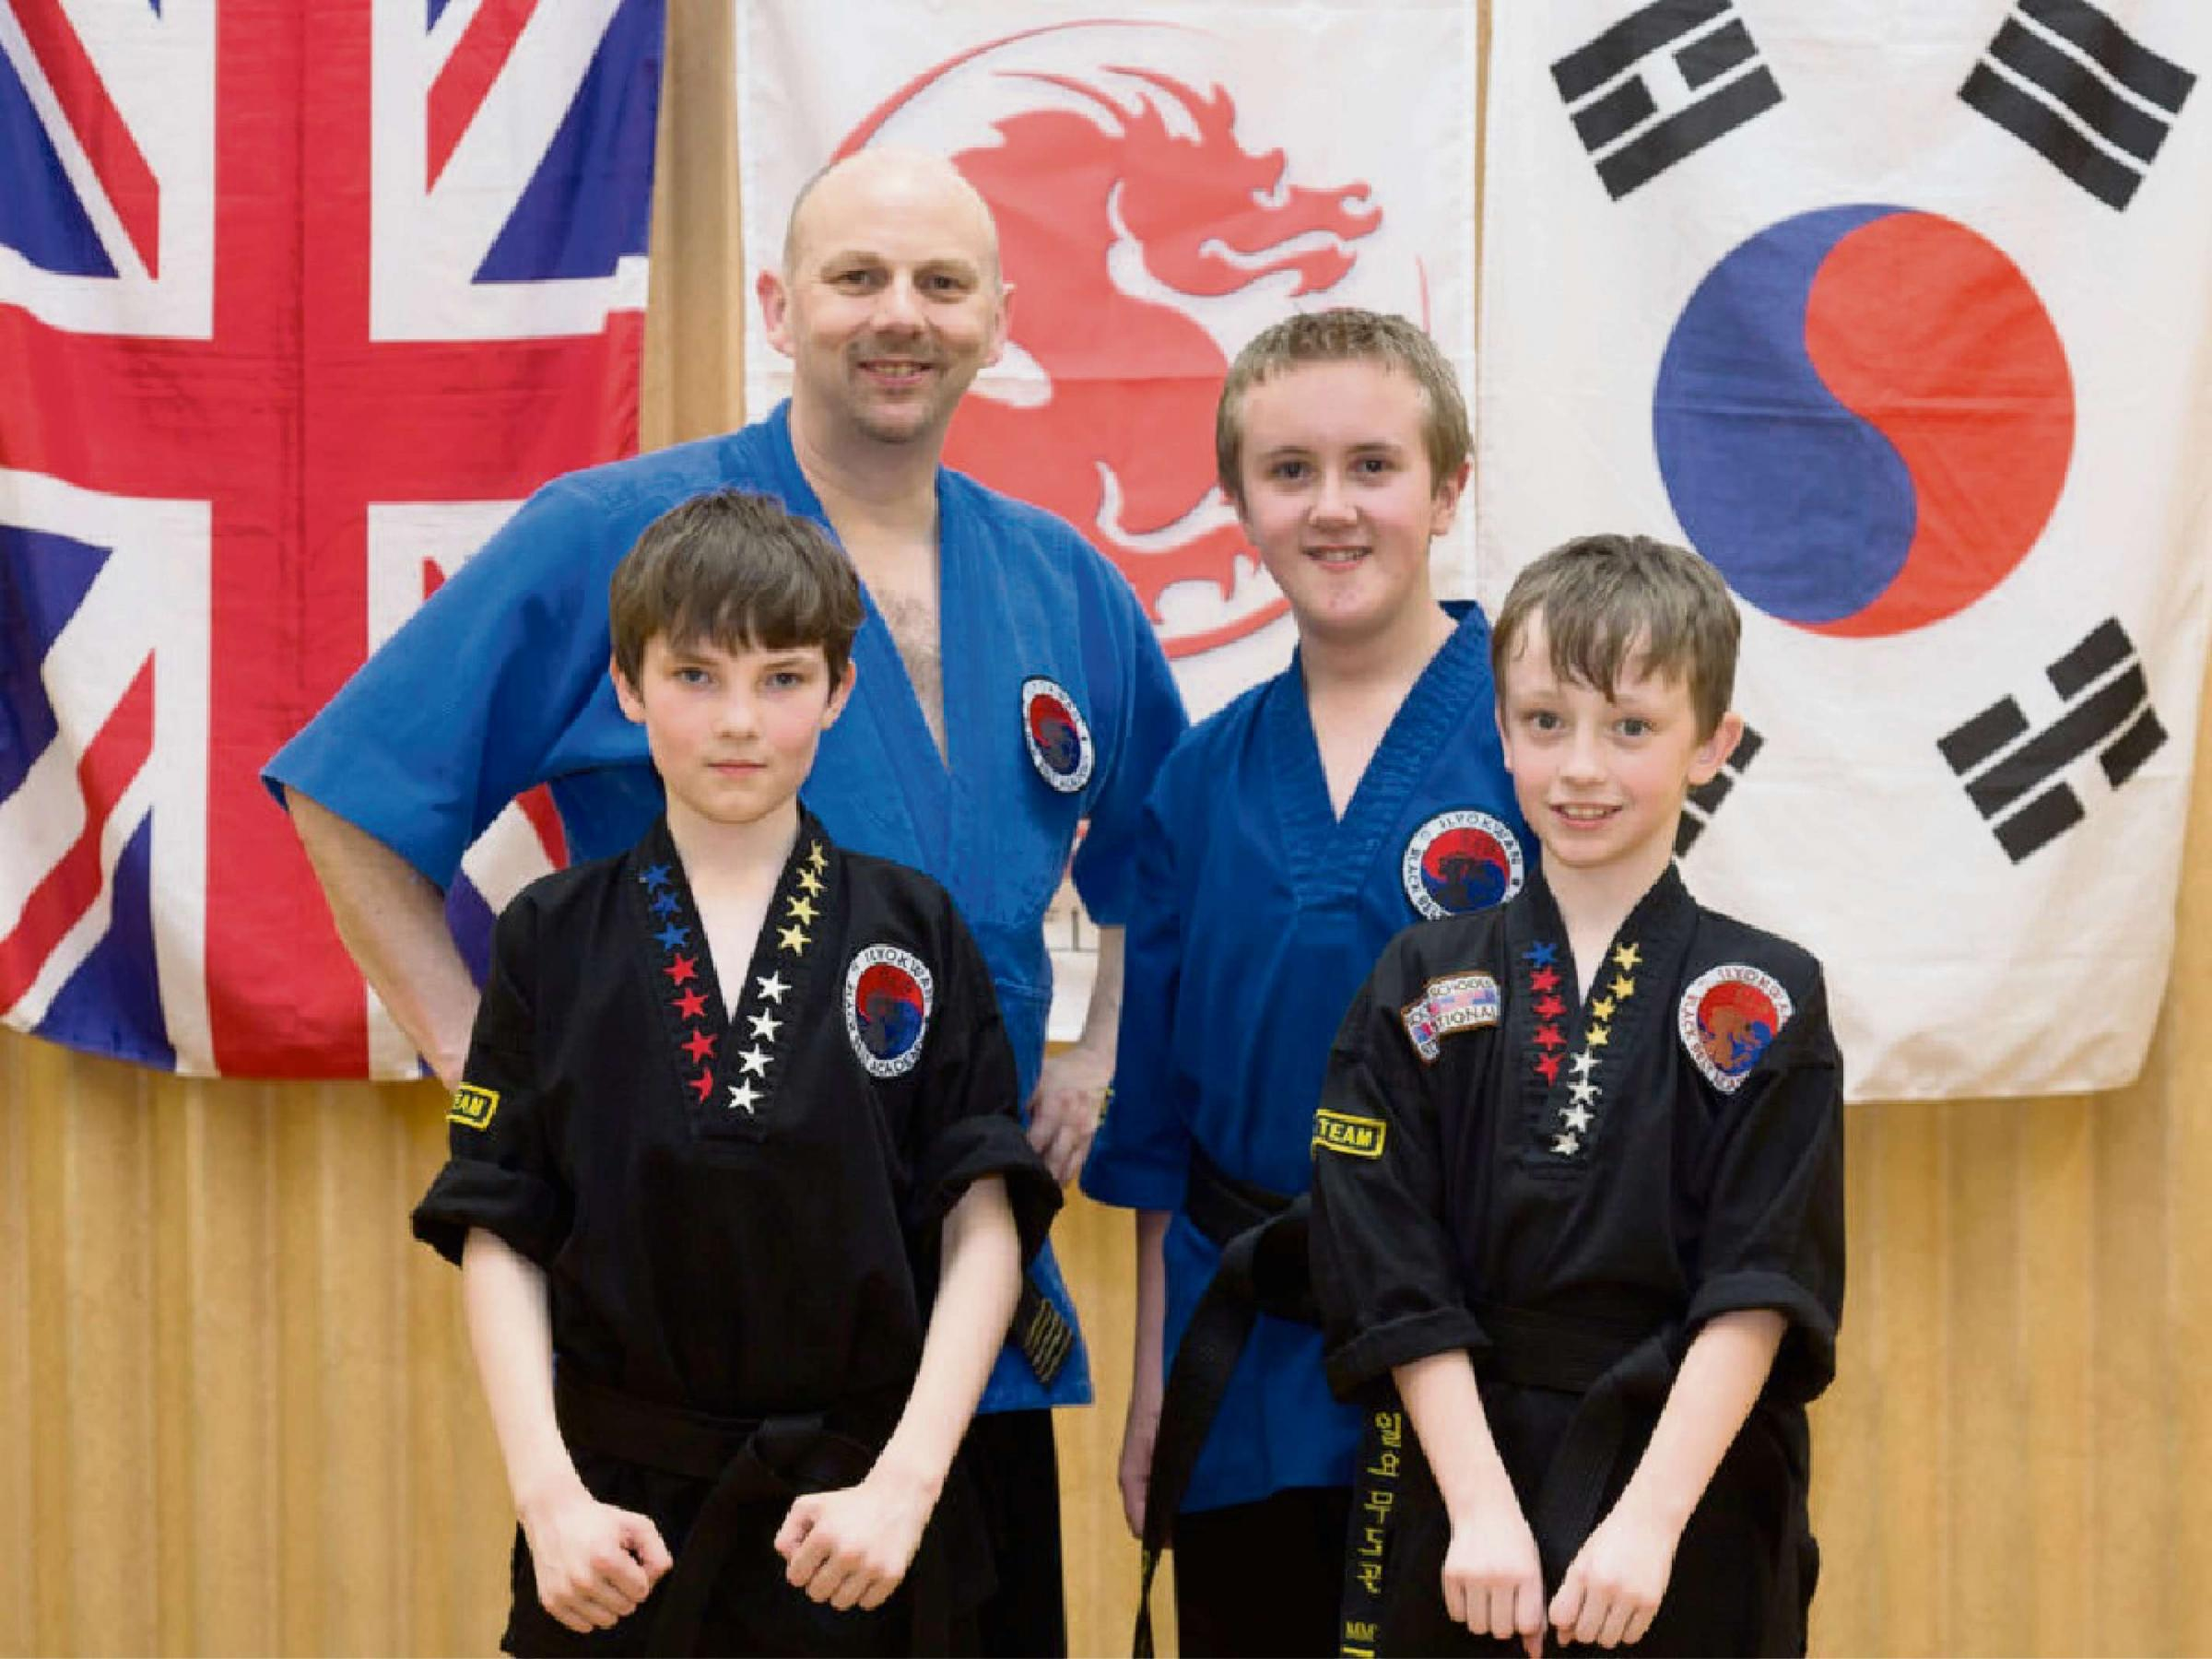 Back row:  Richard Olpin, 6th Dan, and Robbie Hirst,  Junior 2nd Dan. Front row: Dillon Callinan and Harvey Smith (newly promoted junior black belts)